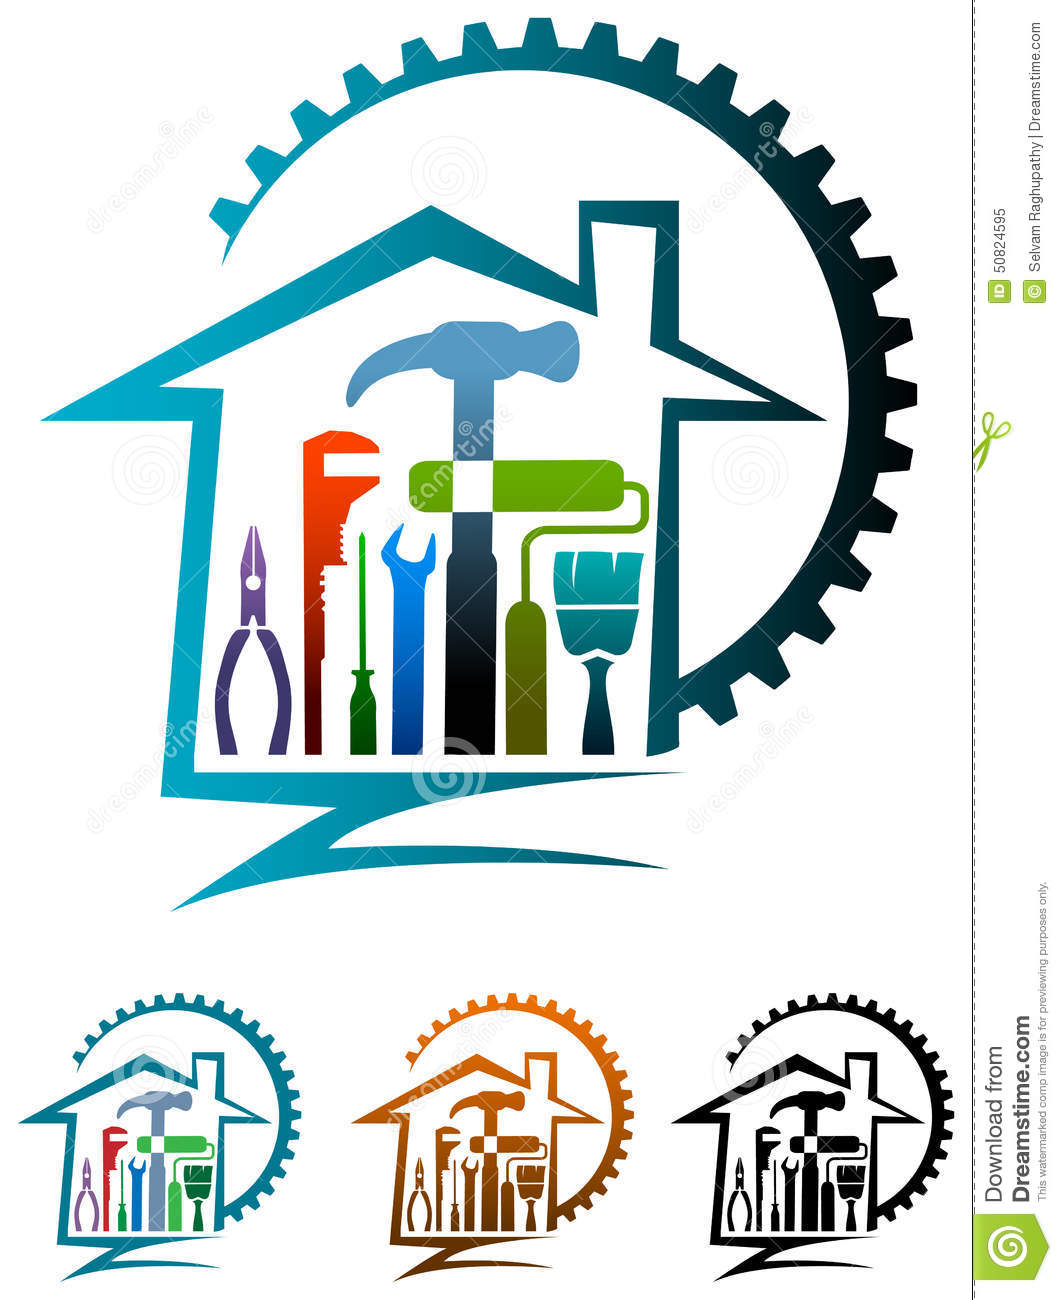 House renovation logo stock vector. Illustration of laborer ... on contracting logos, home repair services, home renovation, home repair logos, home siding logos, real estate logos, best home improvement logos, property management logos, home repair houses clip art, hvac logos, house painting logos, woodworking logos, home contractor logos, home handyman services, home building logos, home restoration logos, home technology logos, home builders logos, home logo construction, handyman logos,